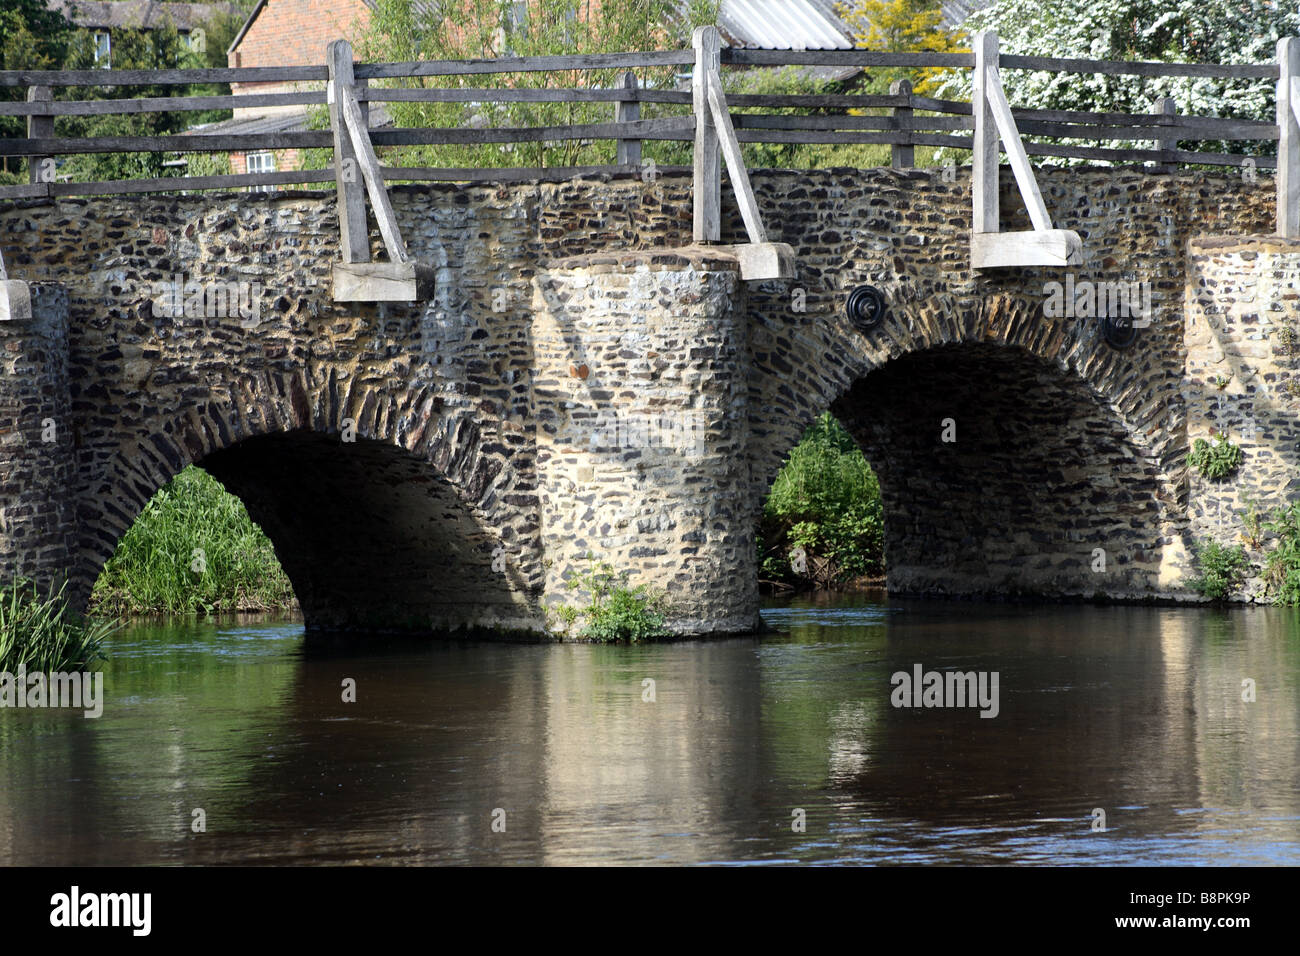 Arches of Tilford Bridge, Surrey - Stock Image